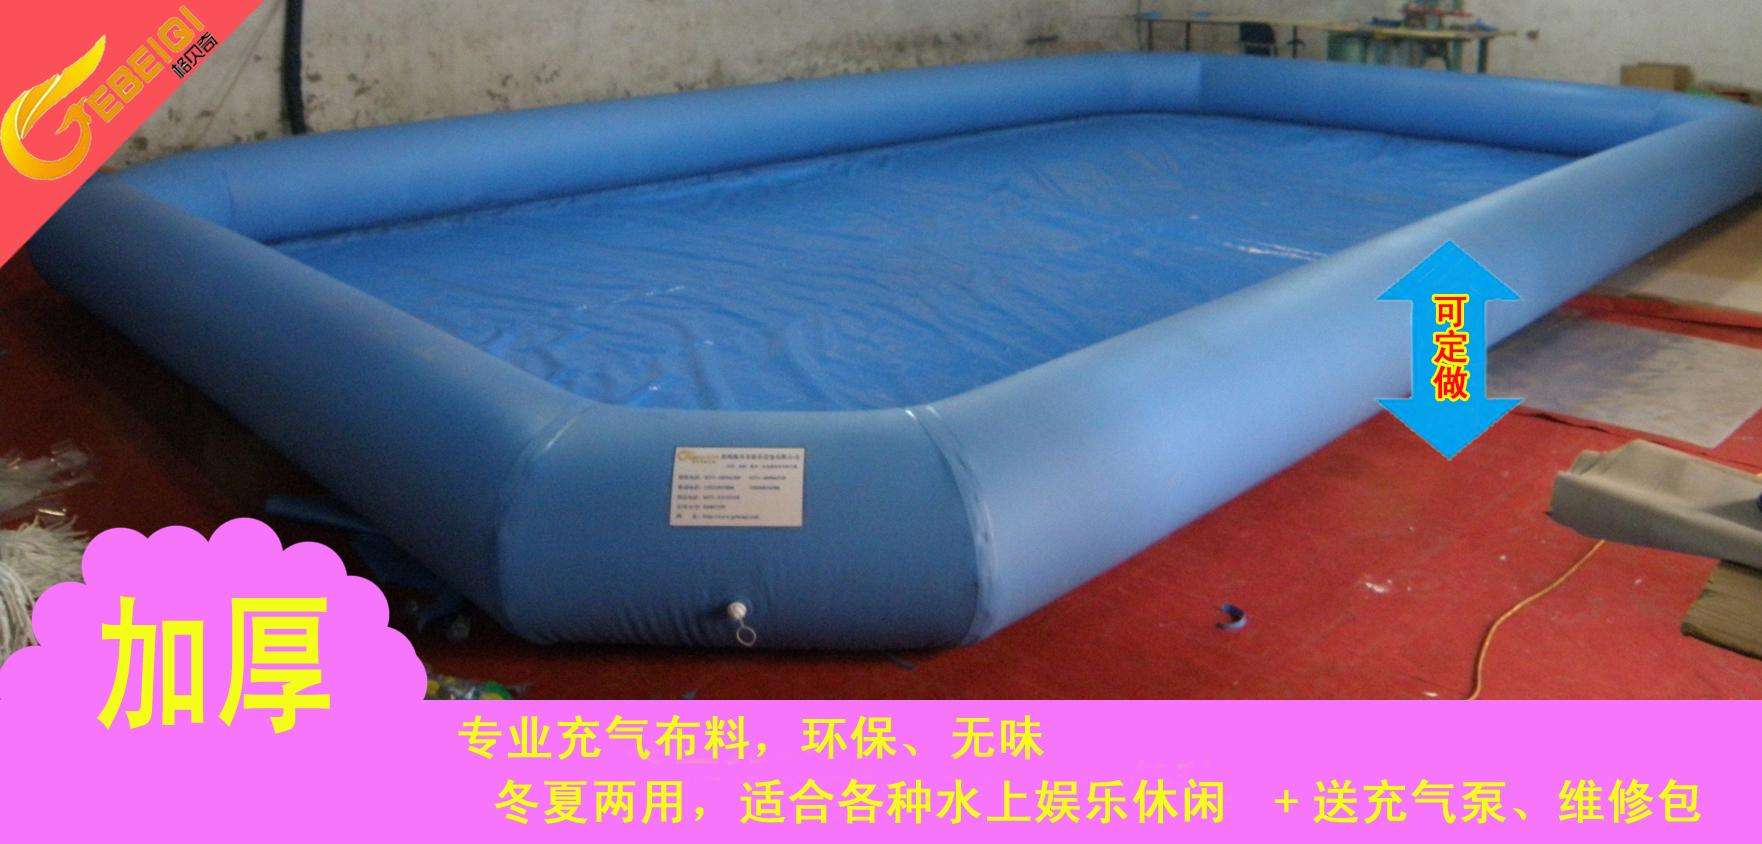 Large octagonal pool inflatable pool inflatable walking ball 09 thick PVC inflatable pool manufacturers custom(China (Mainland))